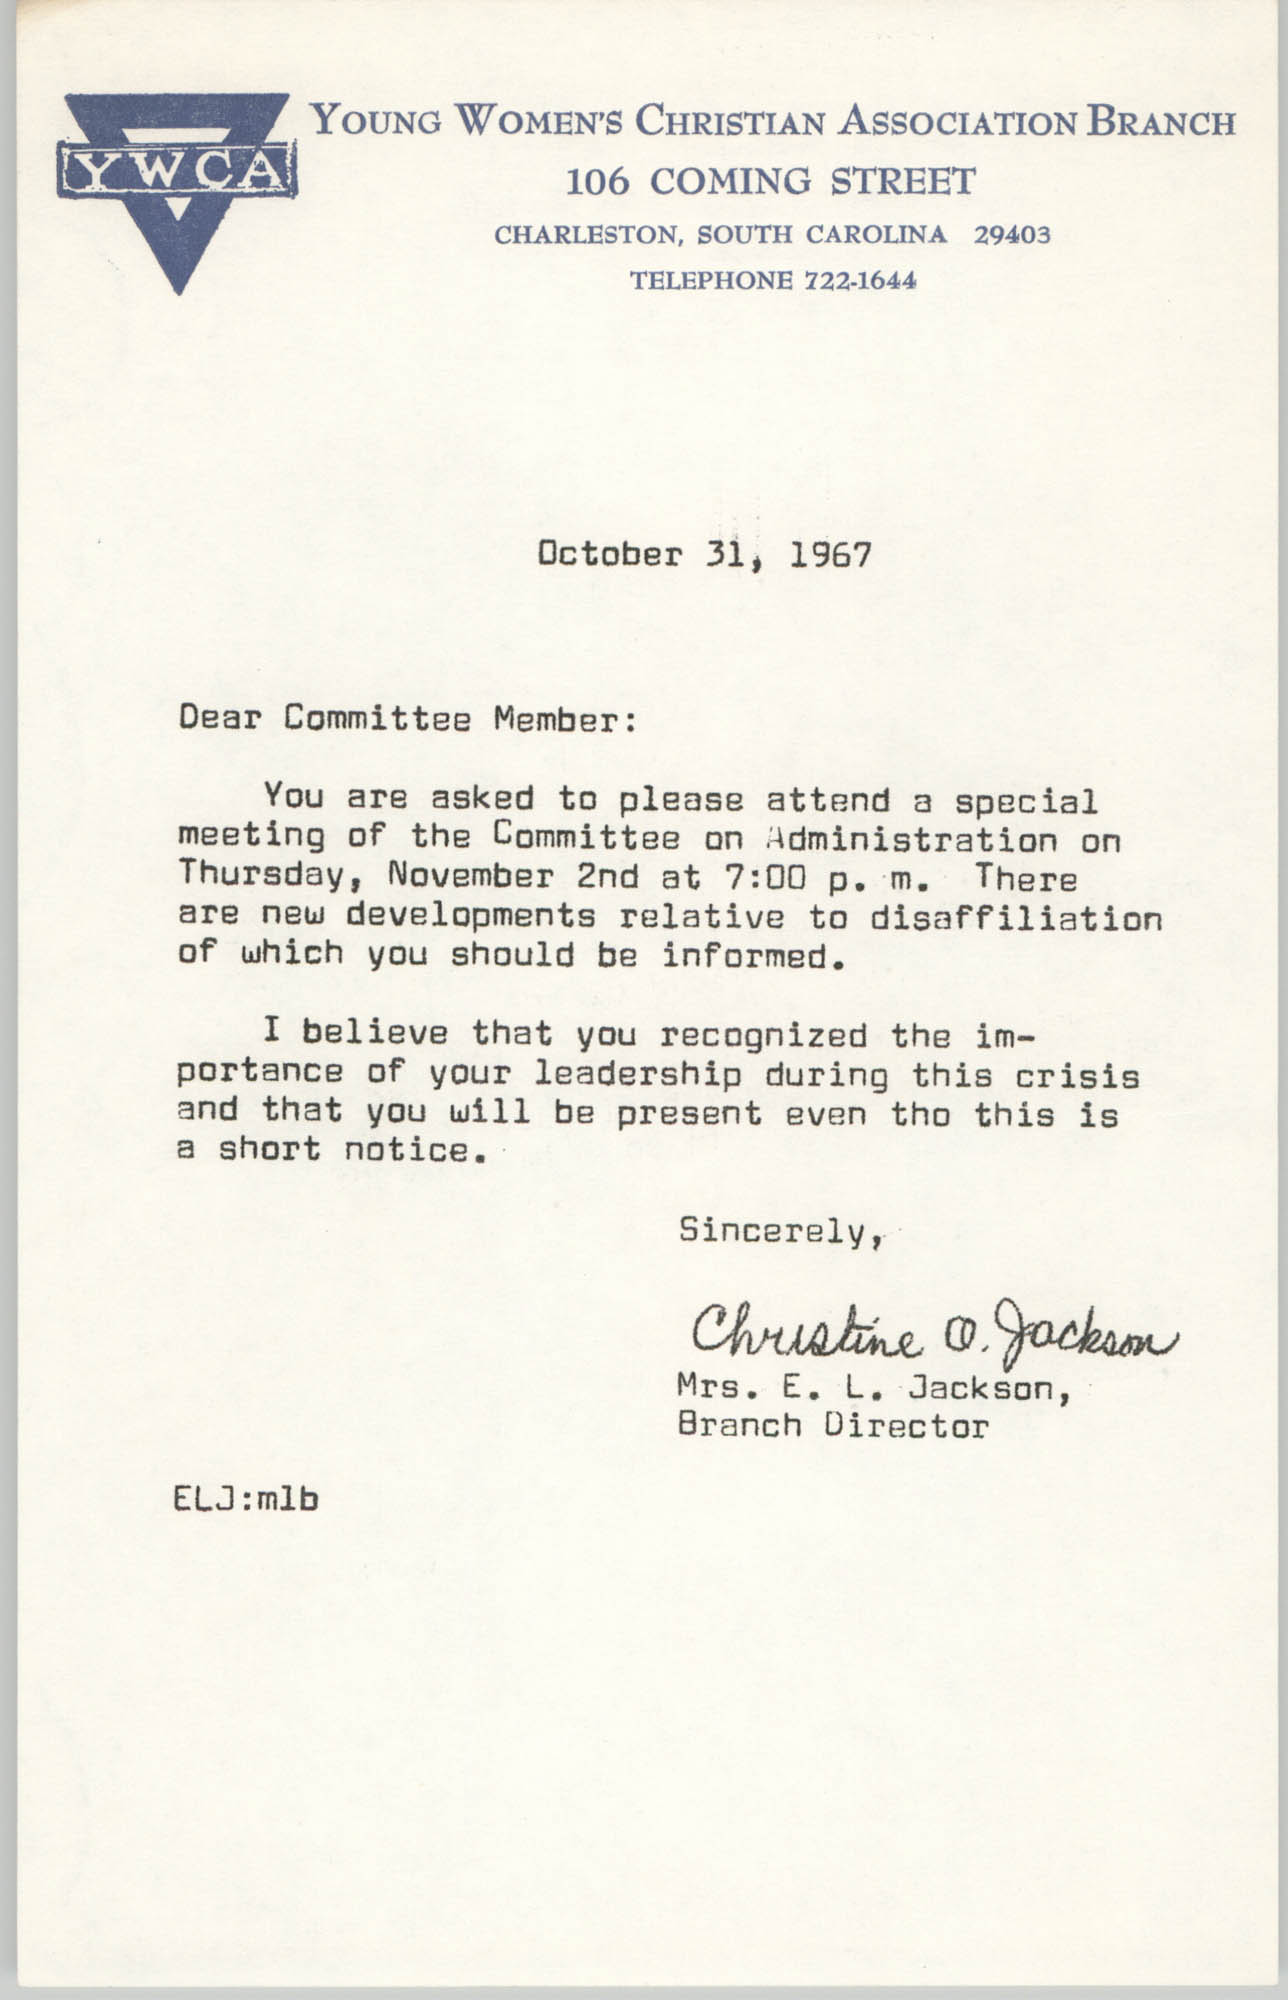 Letter from Christine O. Jackson to Y.W.C.A. of October 31, 1967